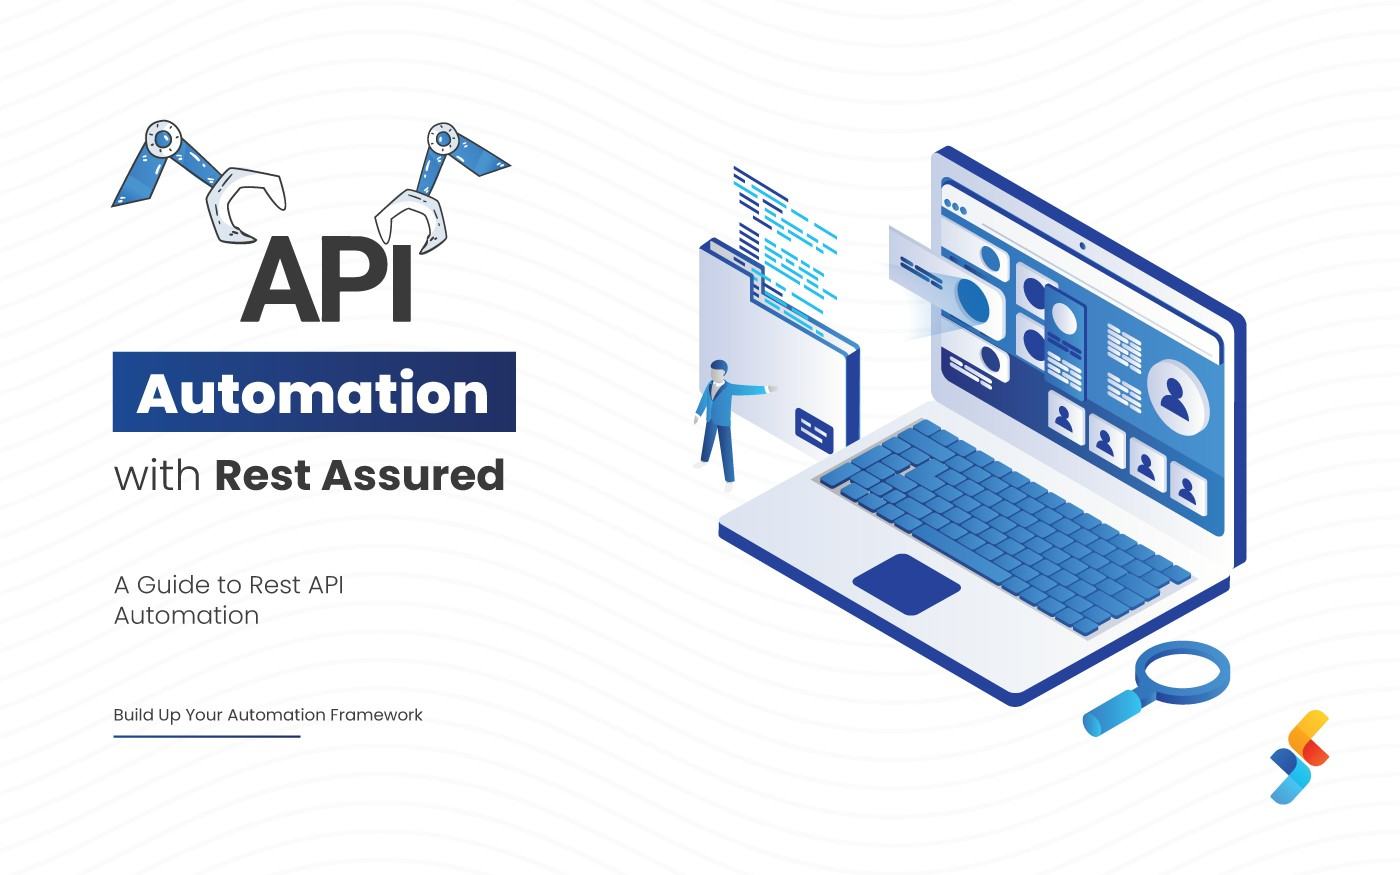 API Automation with Rest Assured